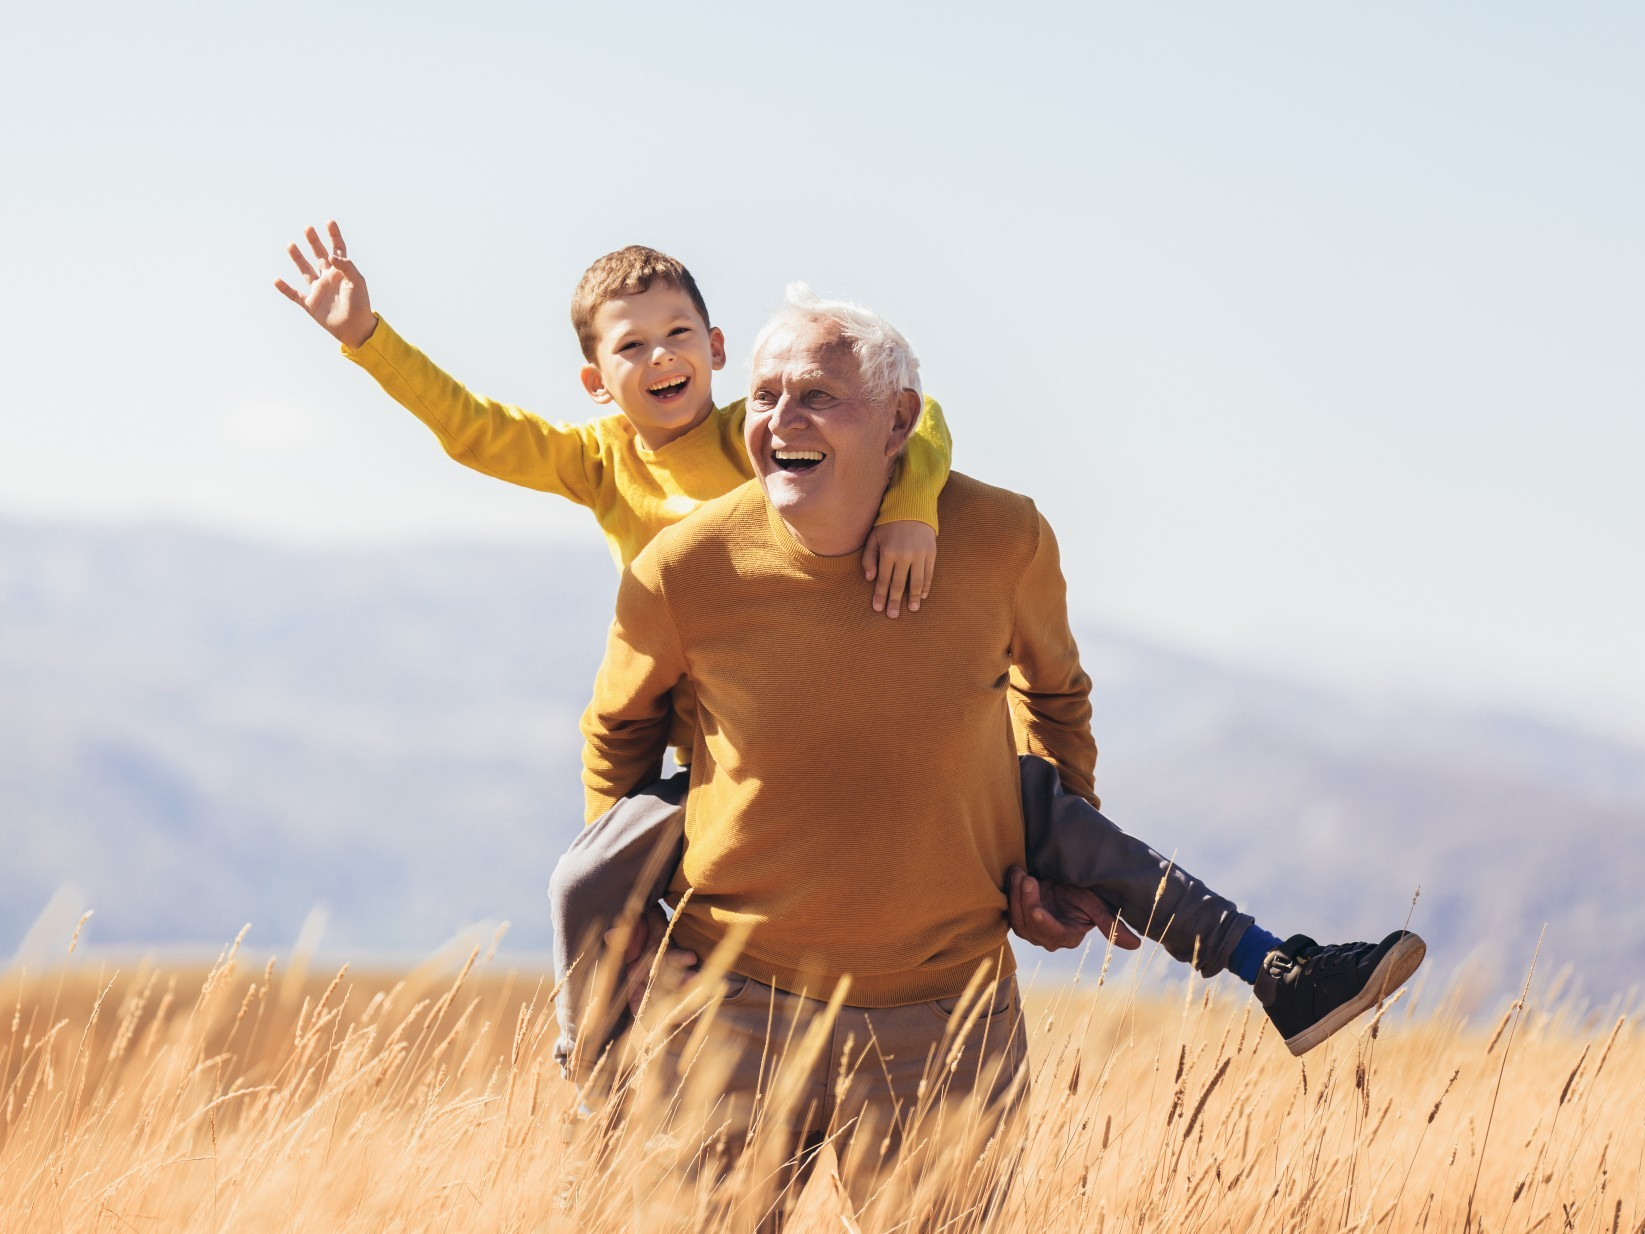 Grandfather going for a hike with his grandson.